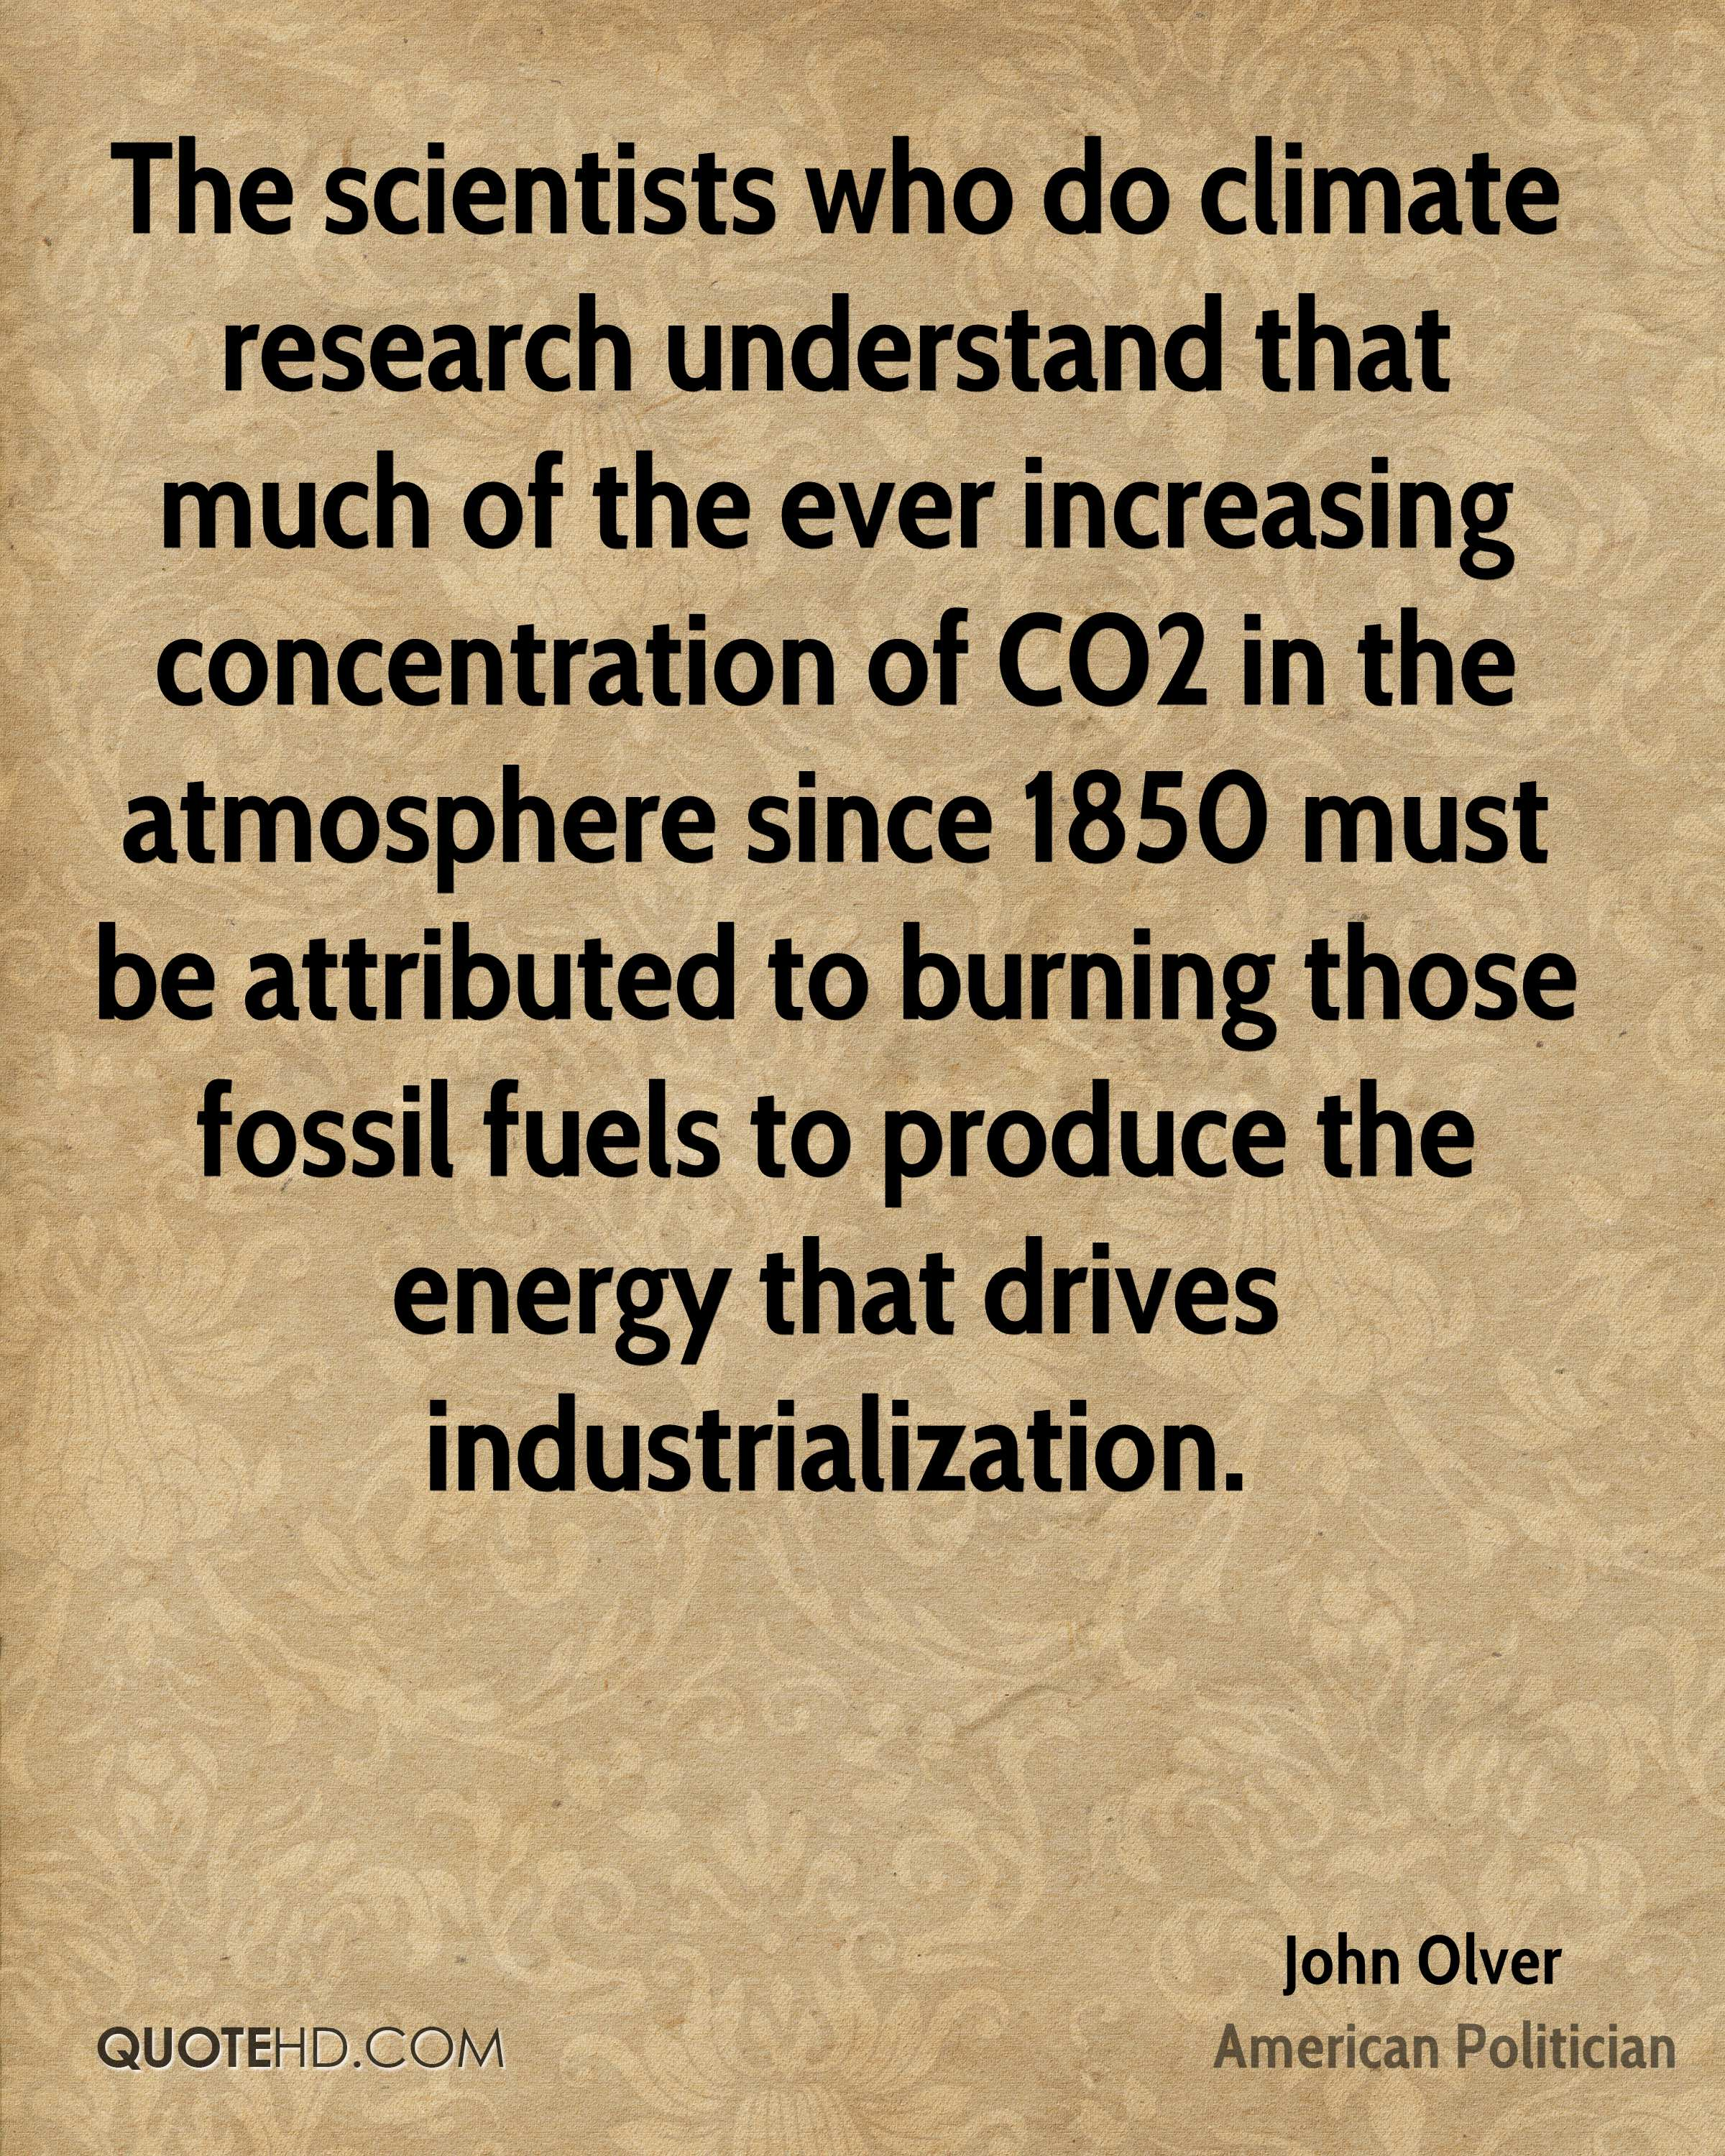 The scientists who do climate research understand that much of the ever increasing concentration of CO2 in the atmosphere since 1850 must be attributed to burning those fossil fuels to produce the energy that drives industrialization.